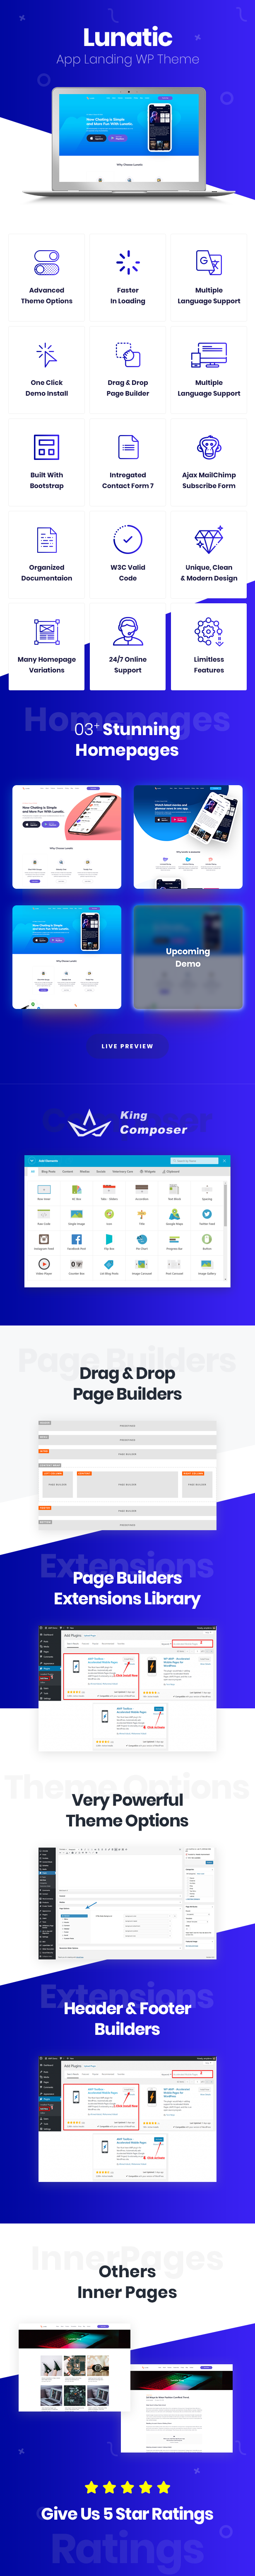 app, app landing, app landing page, app landing template, app landing wordpress theme, app store, creative app landing page, landing page, marketing, mobile app landing page, saas, service, software, wordpress, wordpress theme